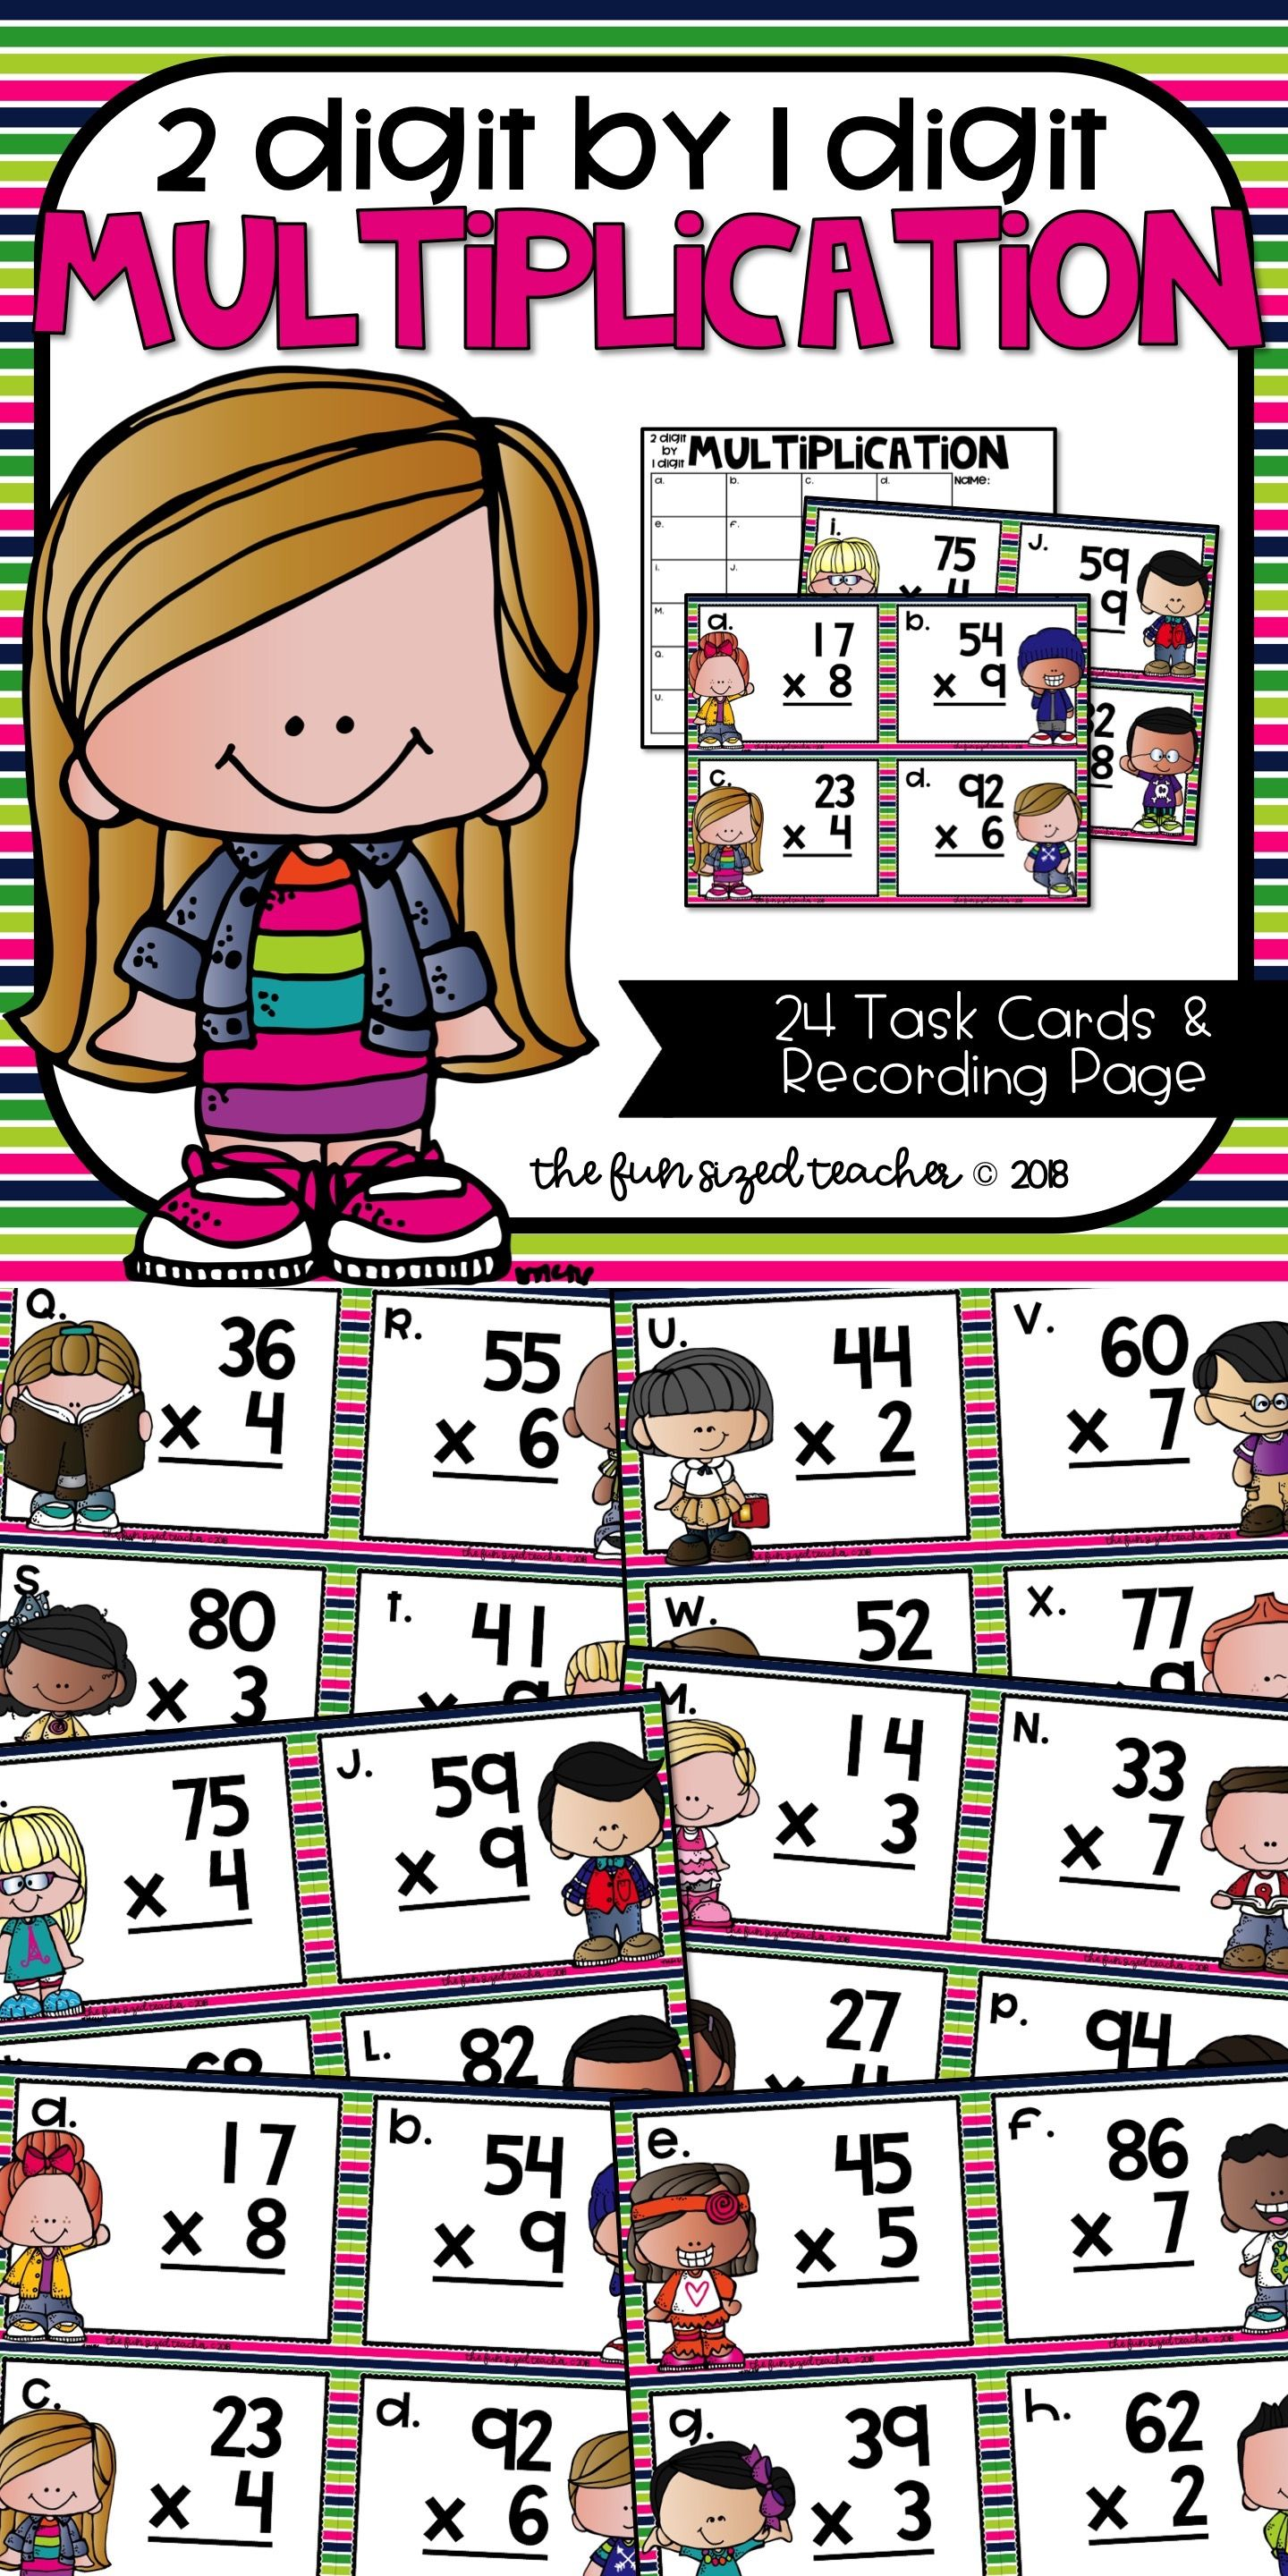 2 Digit By 1 Digit Multiplication Task Cards